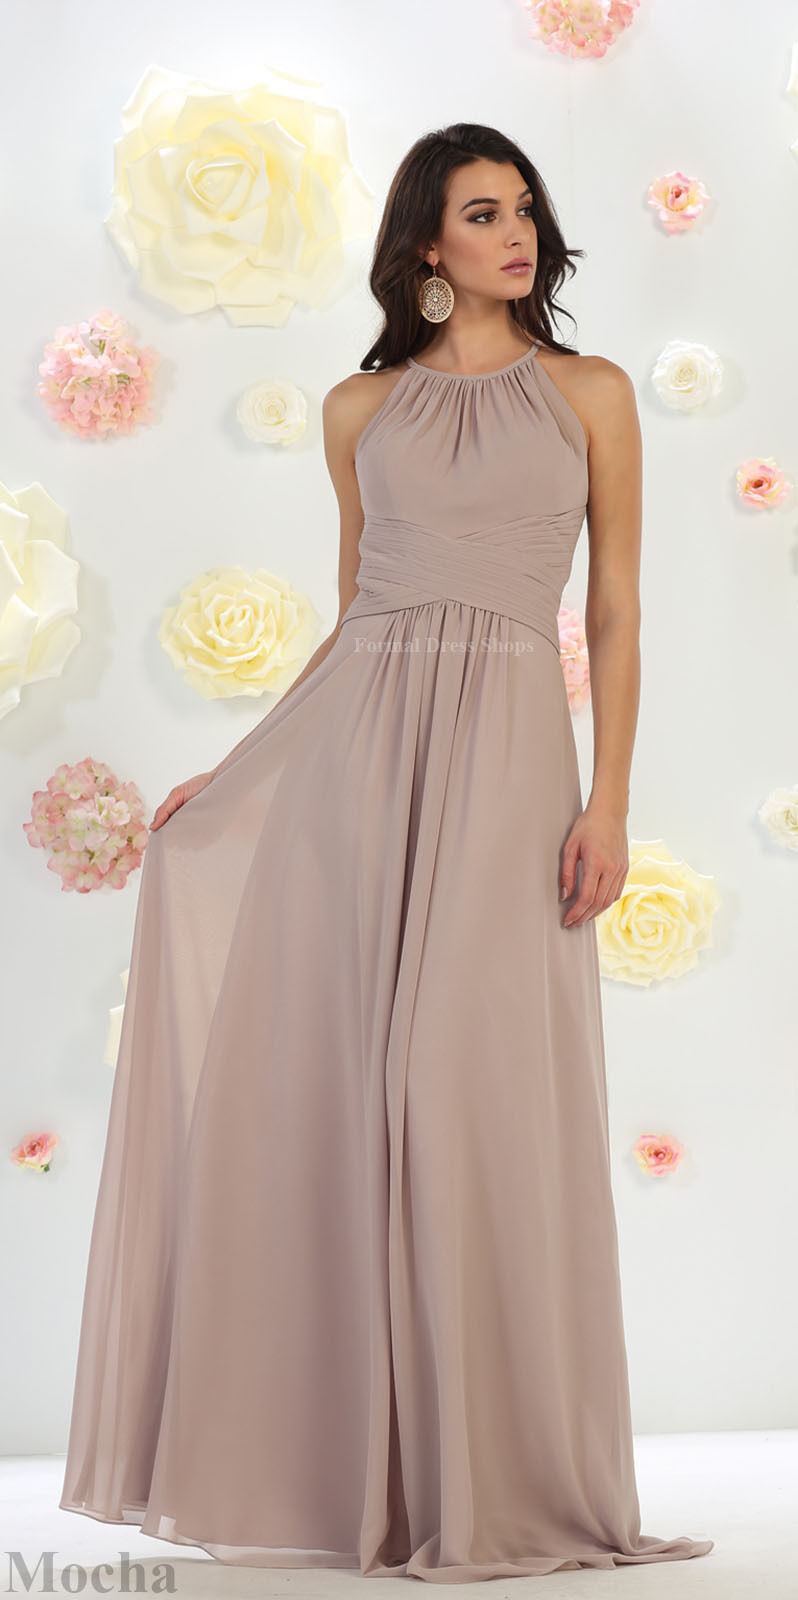 Latest Fashion Styles of Wedding Dresses, Bridesmaid Dresses and Prom Dresses at Incredible Wholesale Price for Your Big Day!